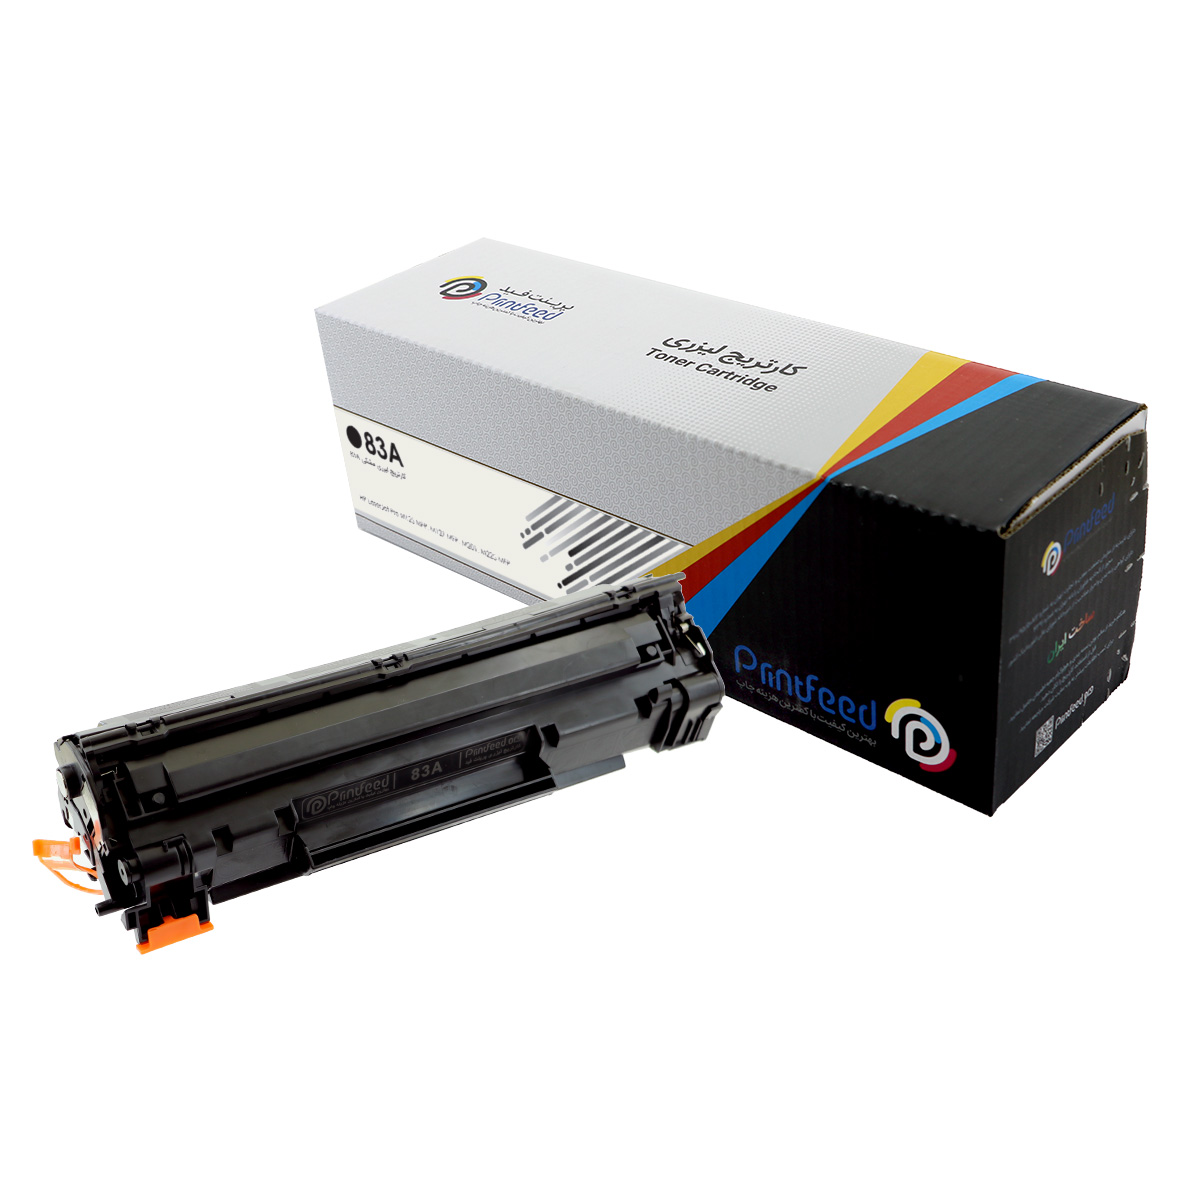 HP laserjet 90A Black Compatible Cartridge